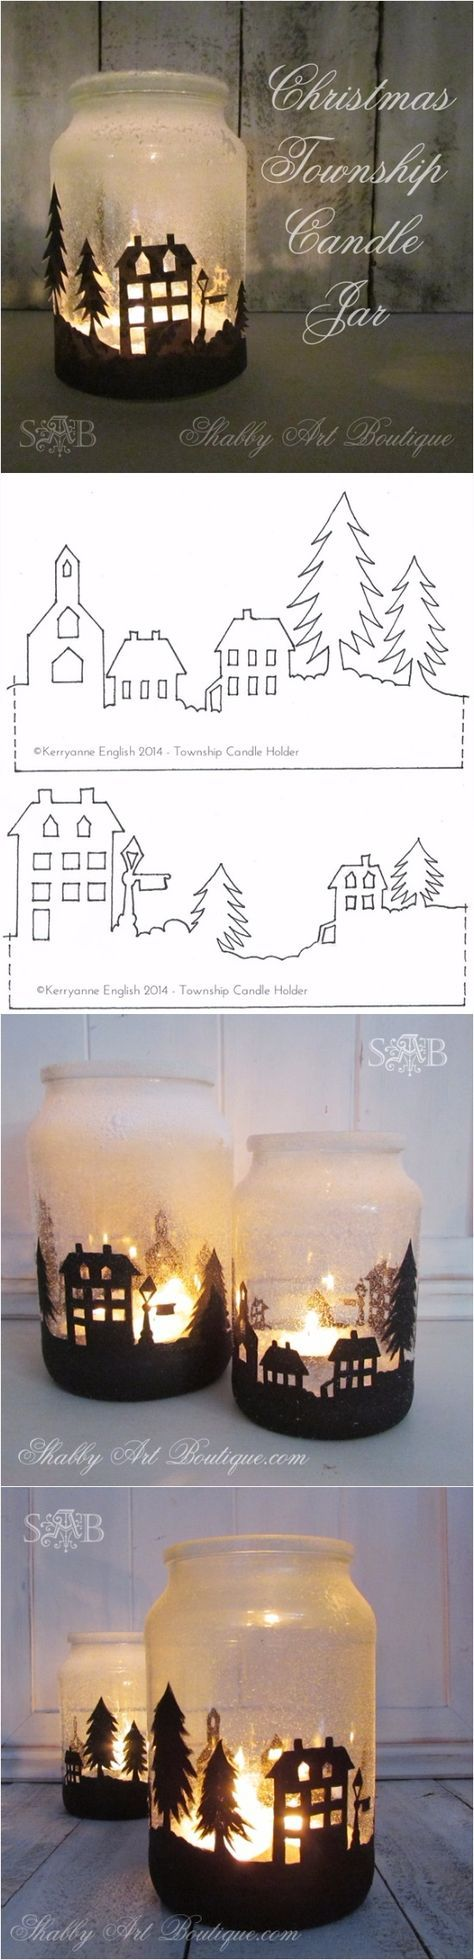 """Materials Glass jar, DecoArt Americana acrylic paint – Lamp Black, Small round paint brushes size 2 and 4, 1/4"""" flat brush, Can of Santa Snow, Wire for handle (optional), Isopropyl Alcohol Spray and clean cloth.  Instructions for making painted township 1. Clean jar with soapy water and remove any labels. 2. Wipe outside of […]"""